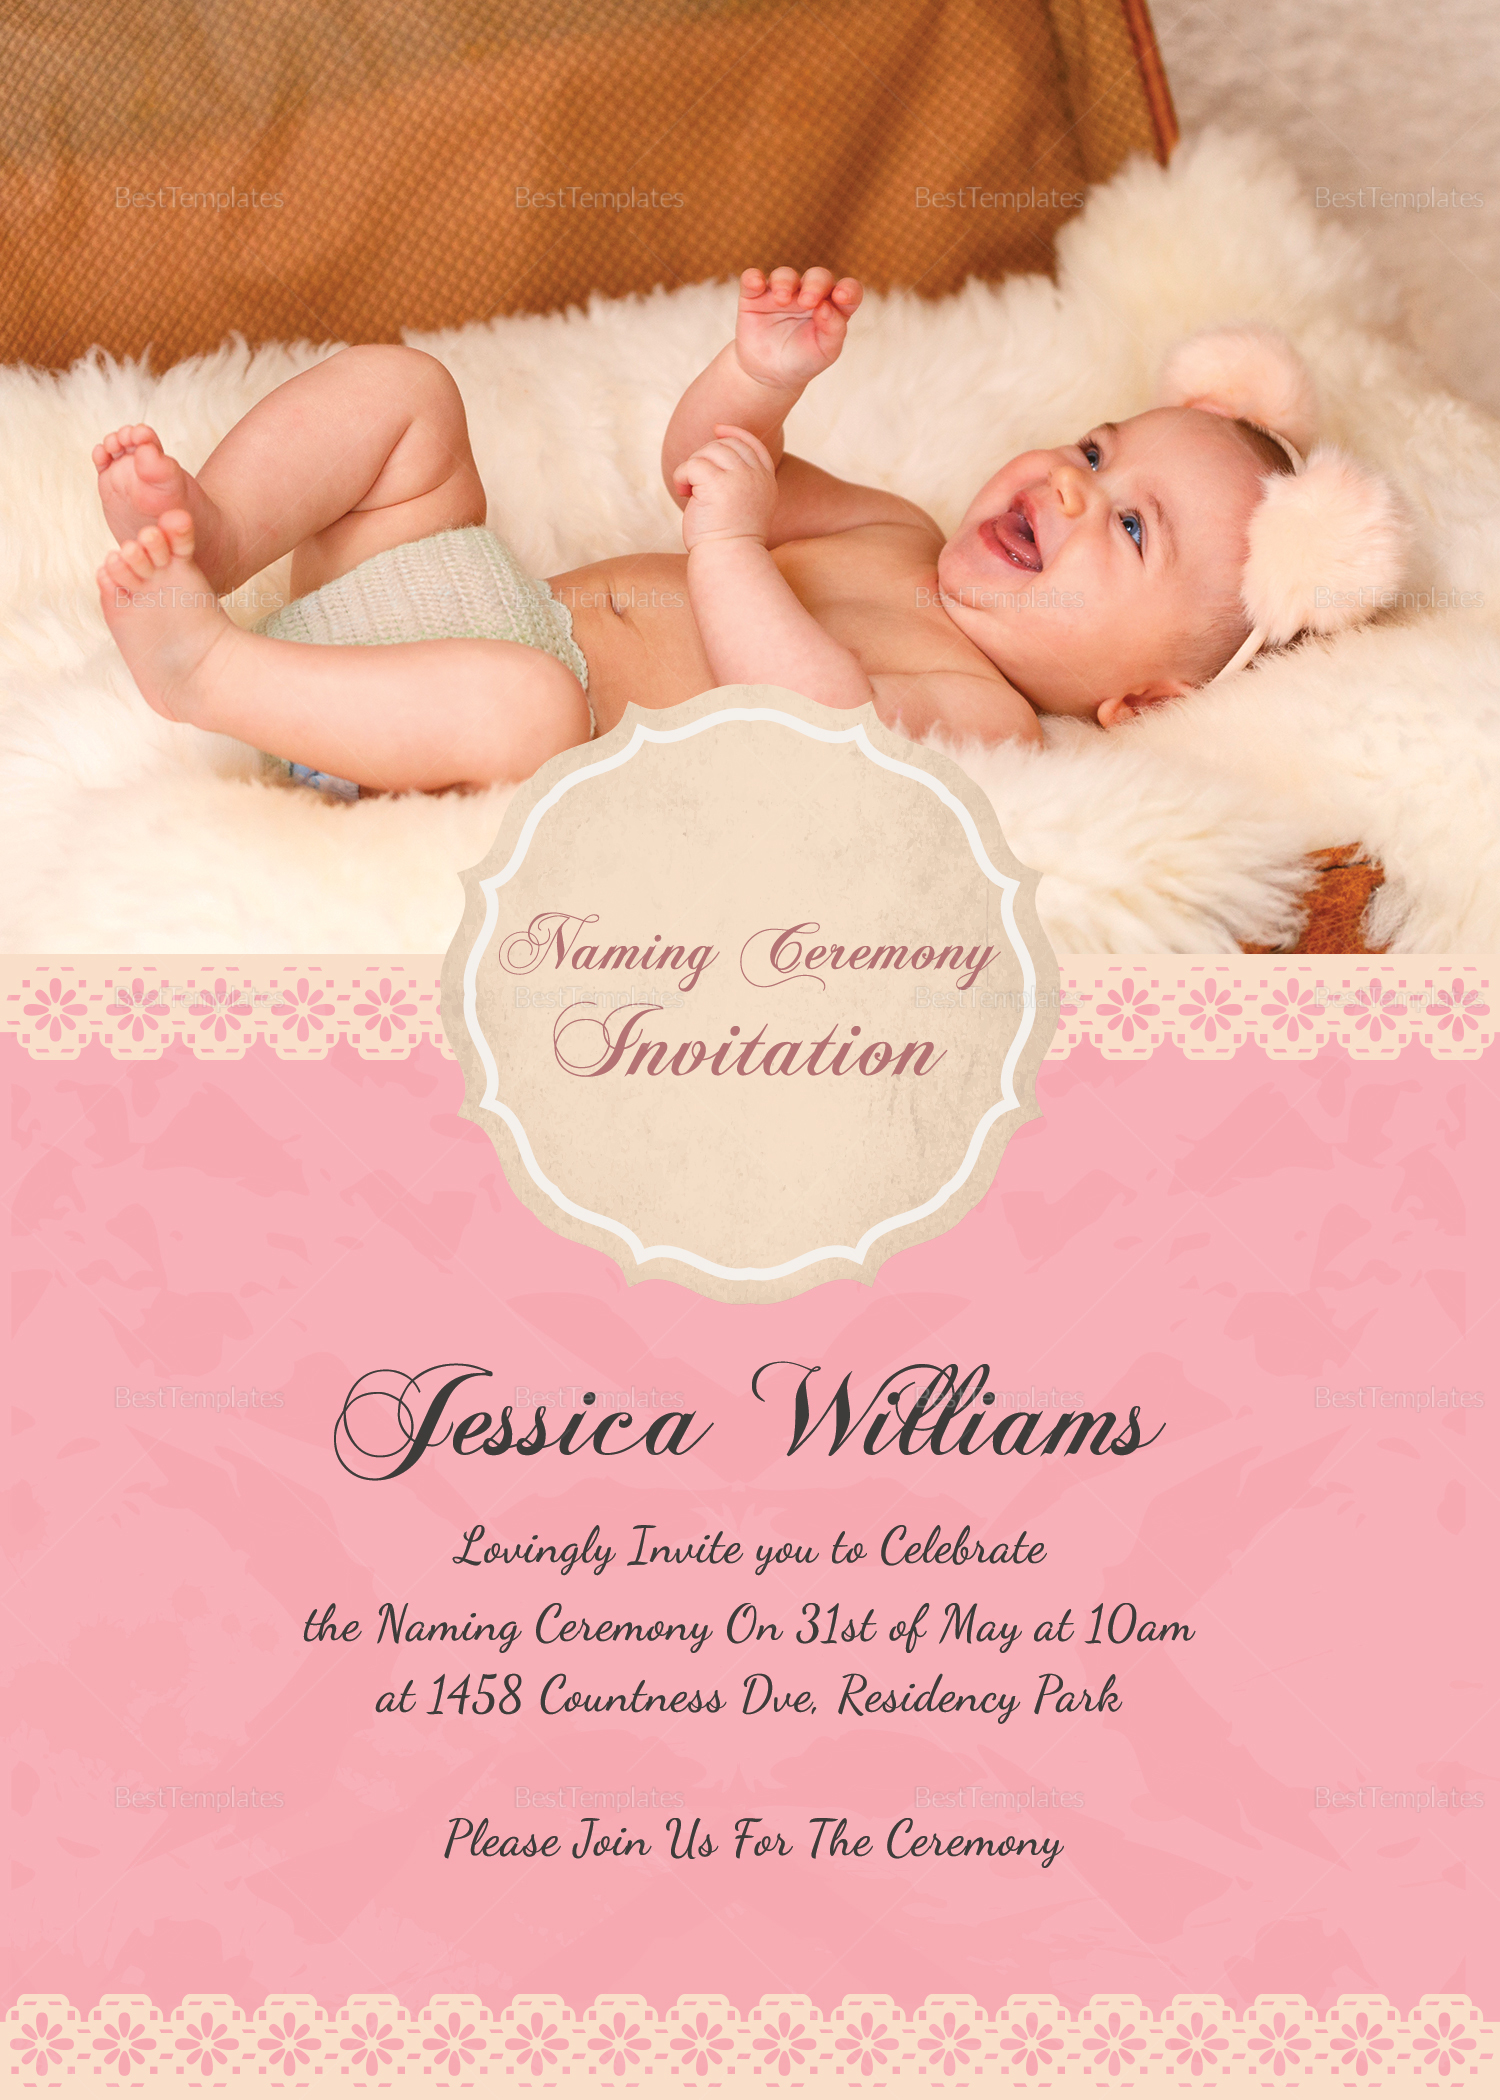 Happy Baby Naming Ceremony Invitation Card Template